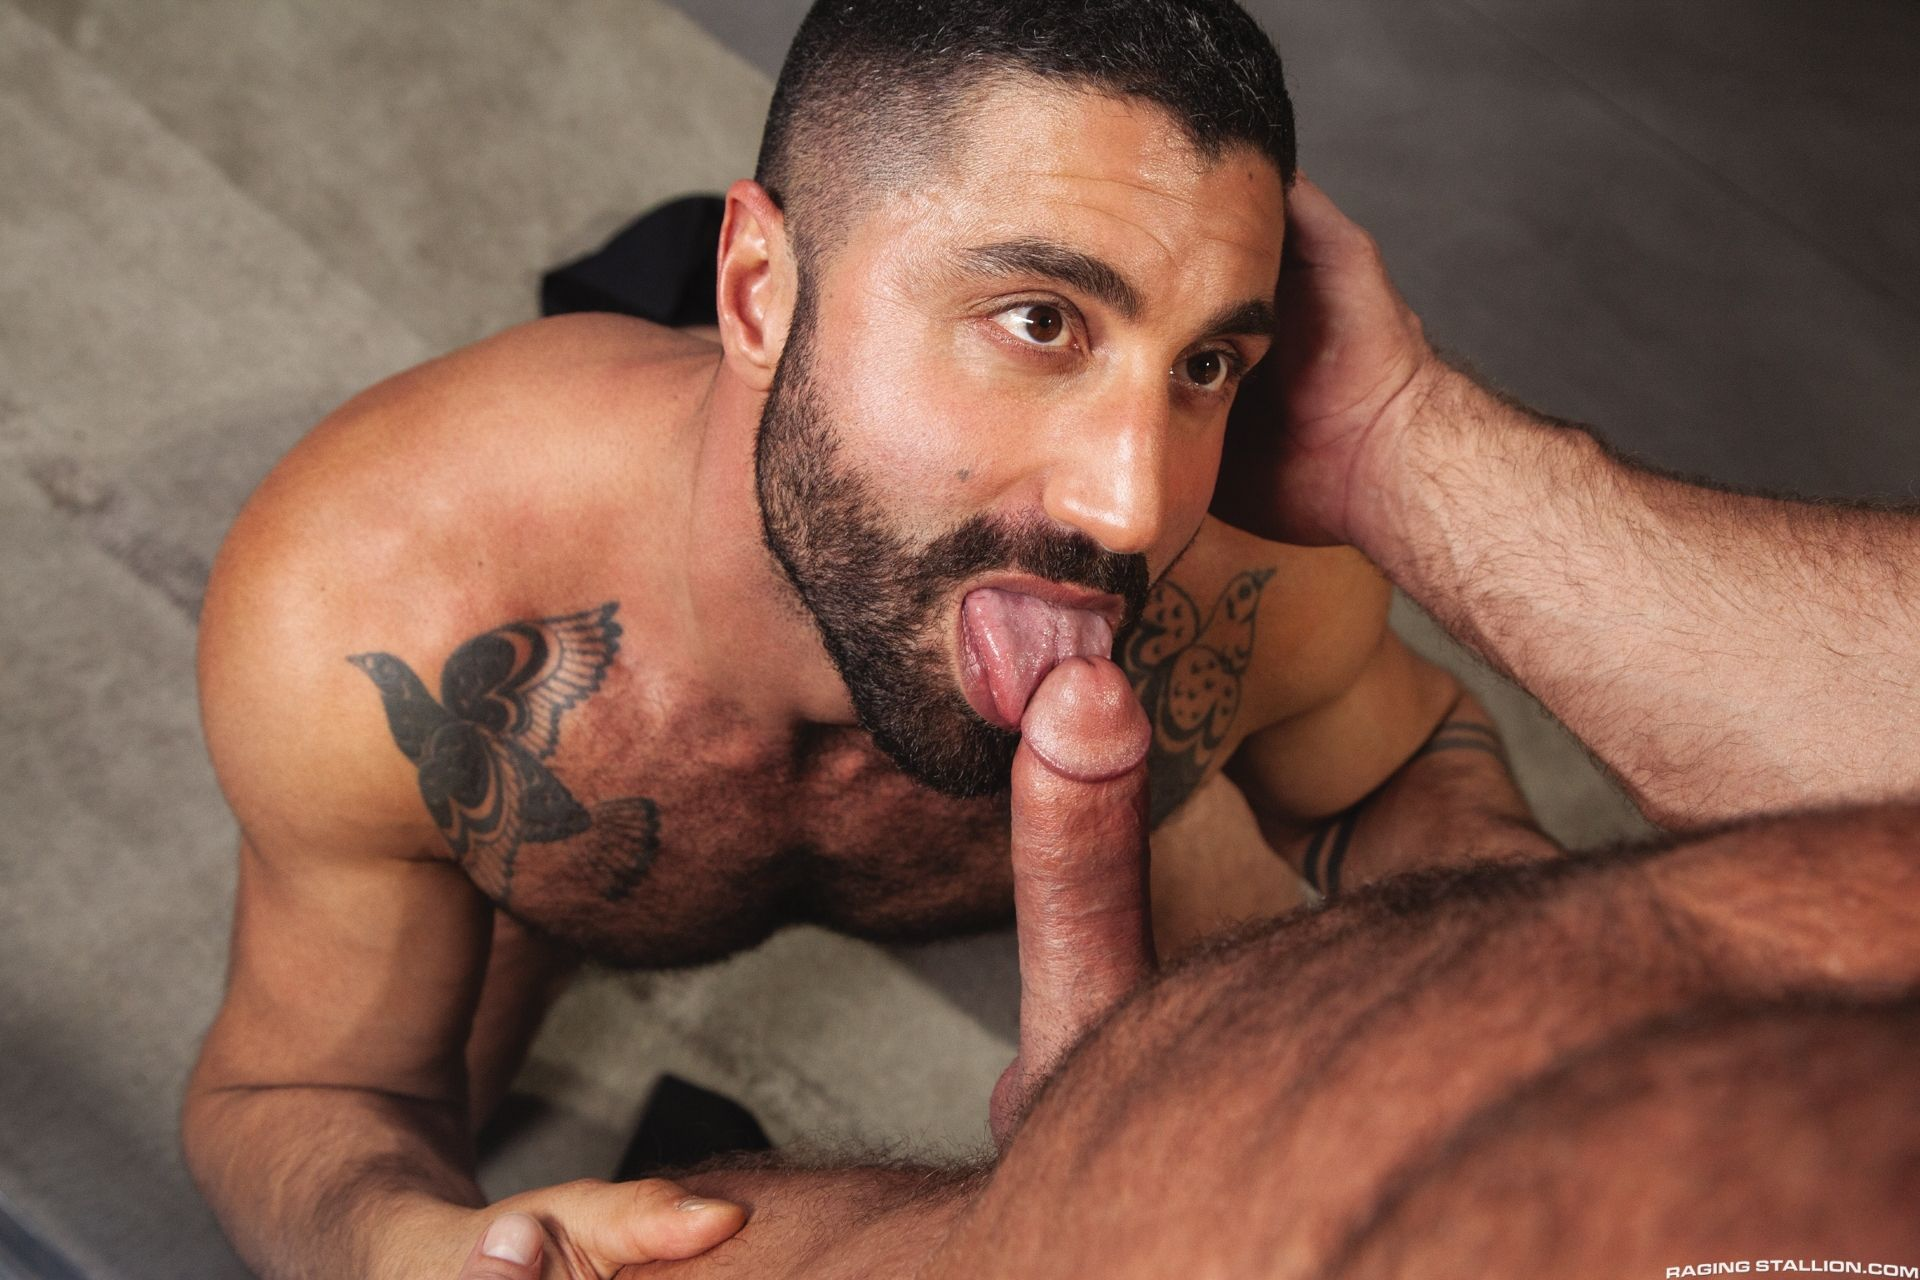 Actor Porno Sharok sharok and liam knox fuck each other